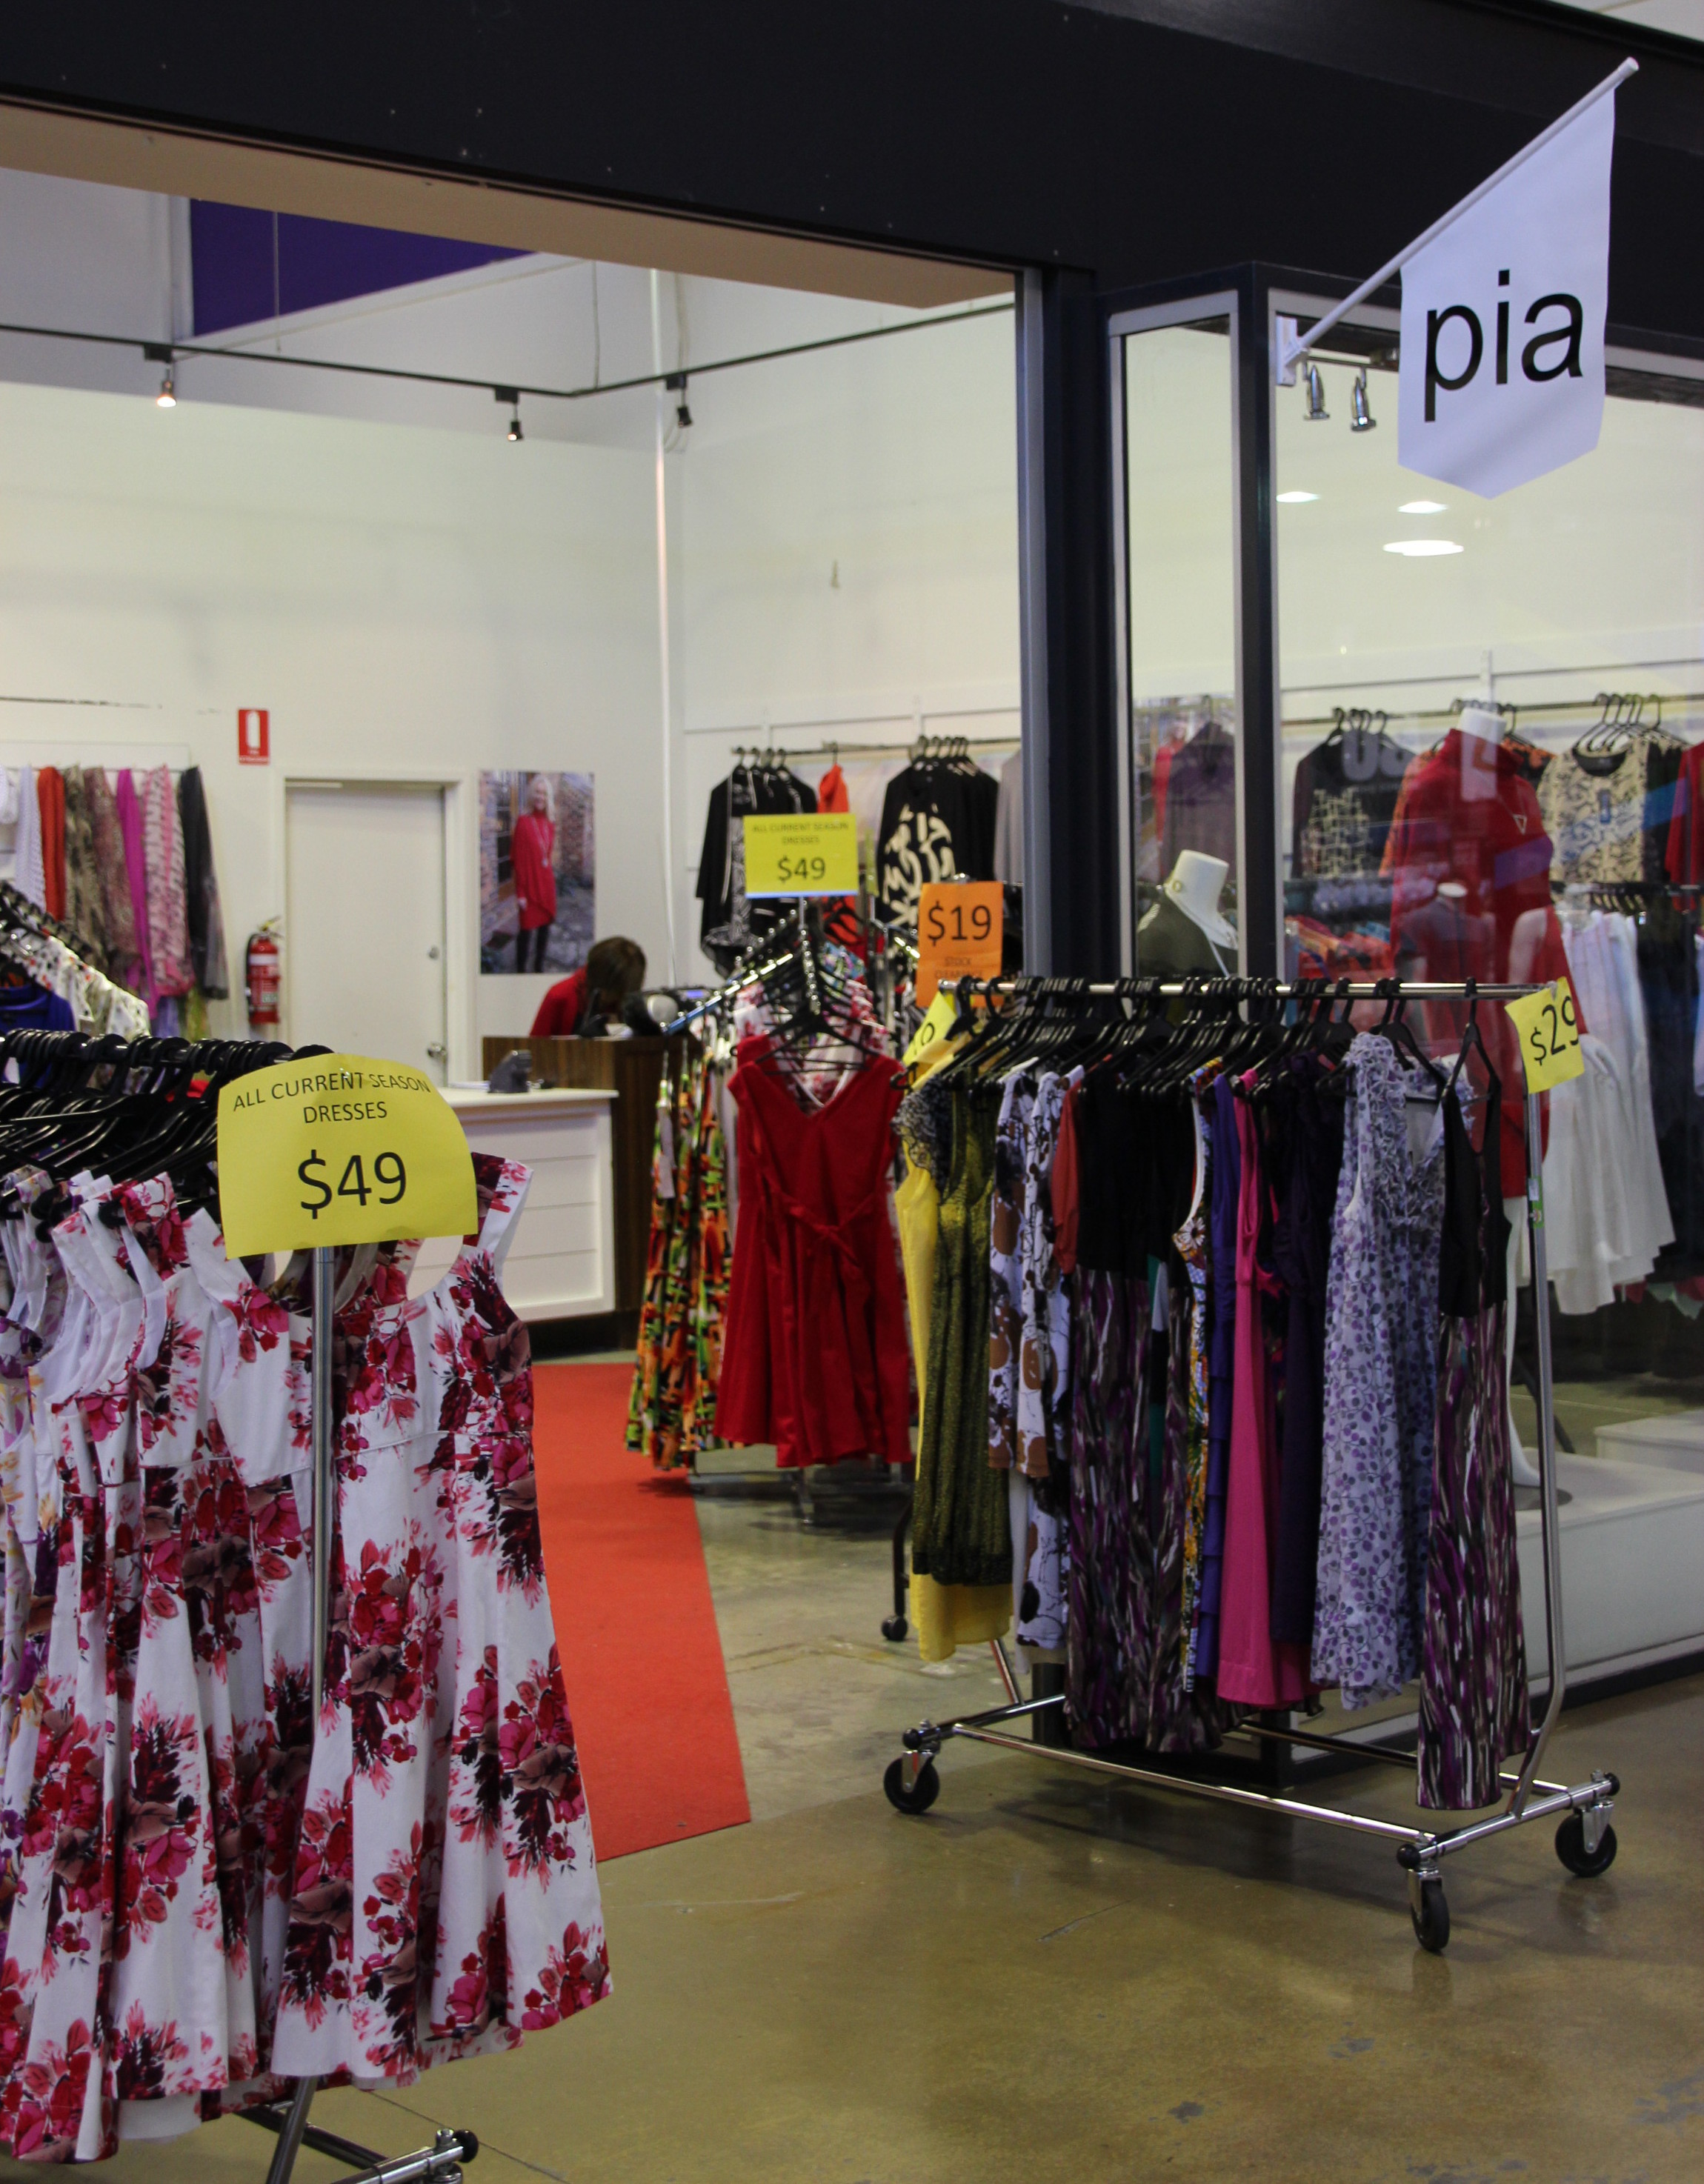 Pia Wear.Lifestyle Clothing at First in Best Dressed Event